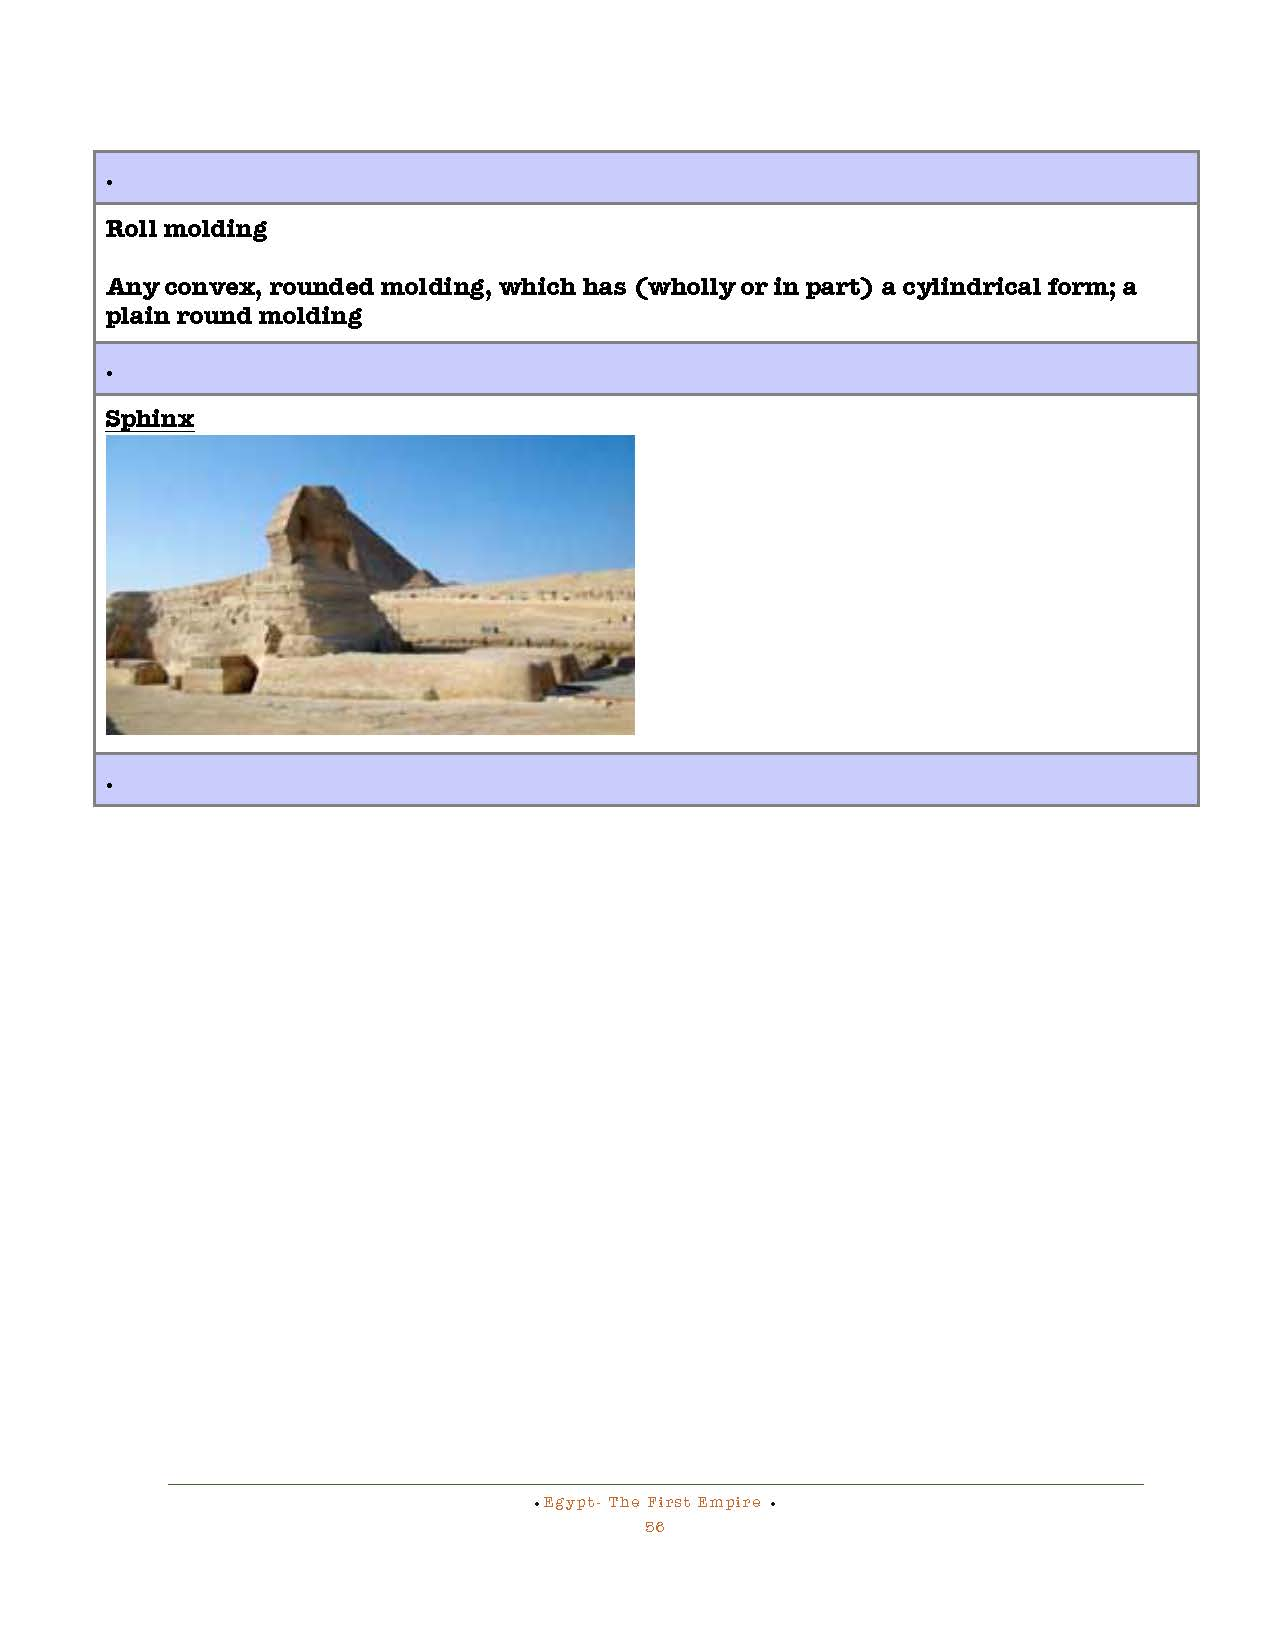 HOCE- Egypt  (First Empire) Notes_Page_056.jpg